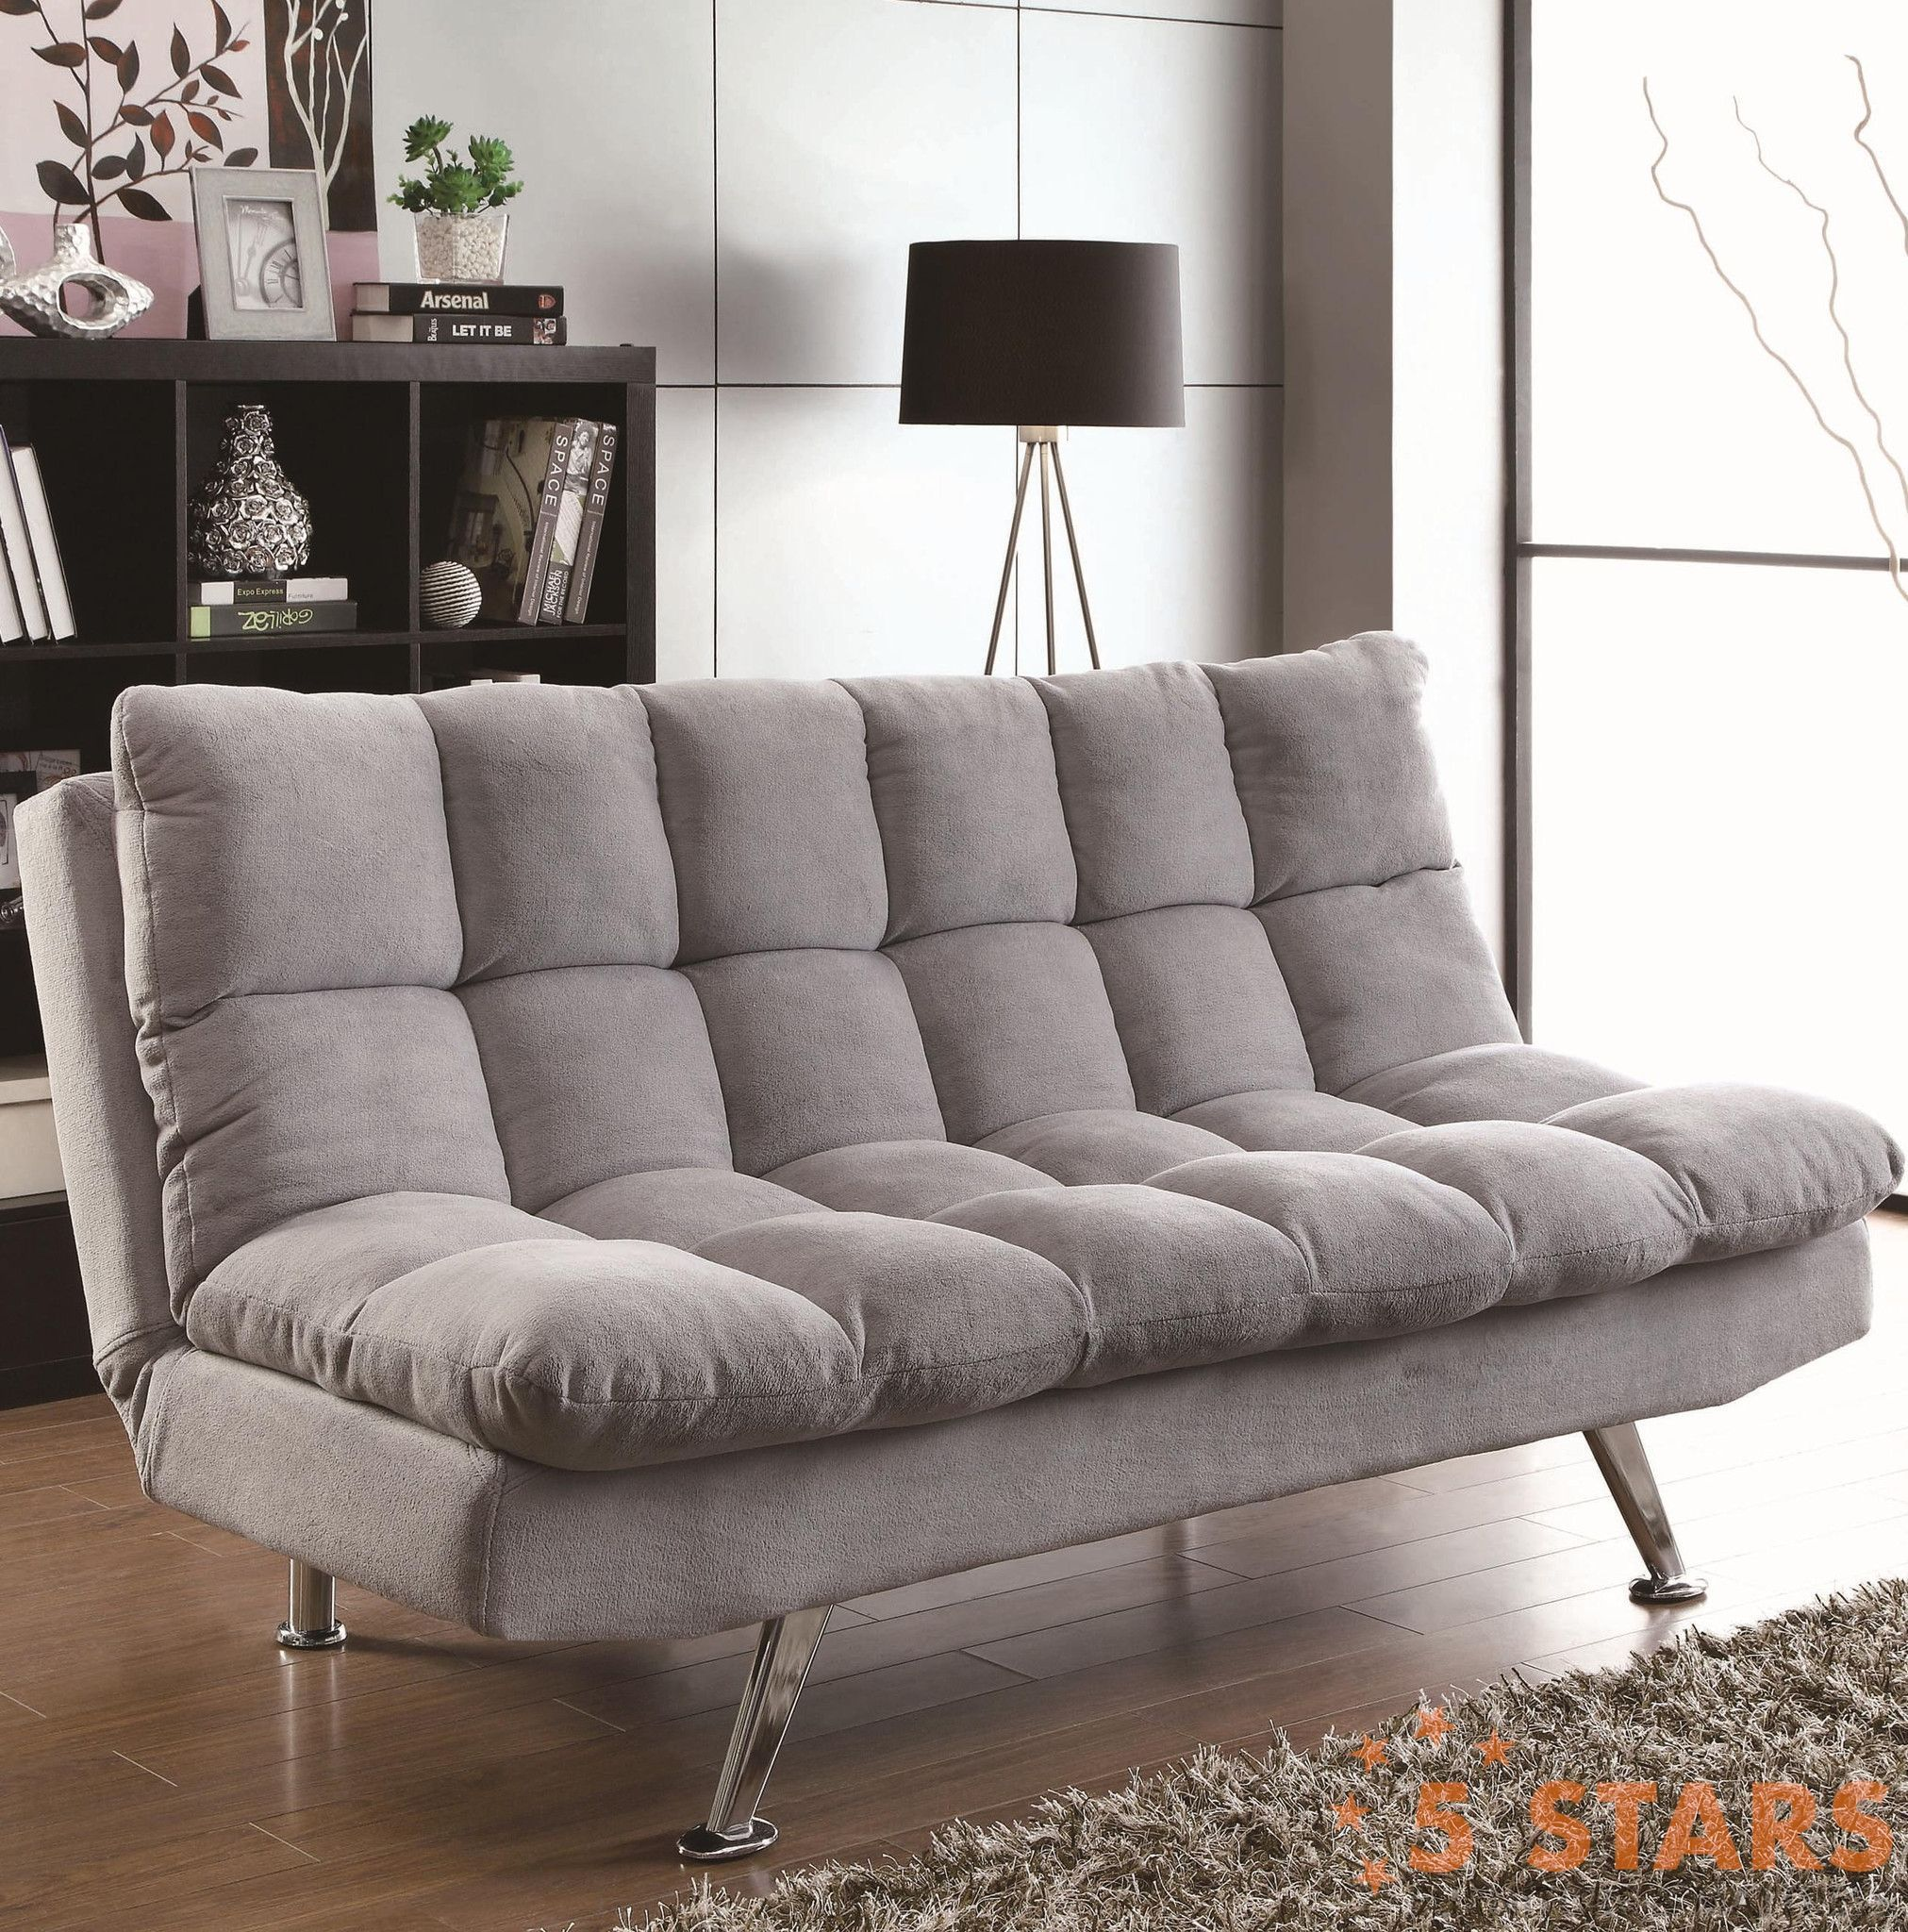 Bring A Casual Transitional Styling Into Your Home With This Sofa Bed Futon It Office Decor Grey Sofa Bed Futon Sofa Bed Futon Sofa